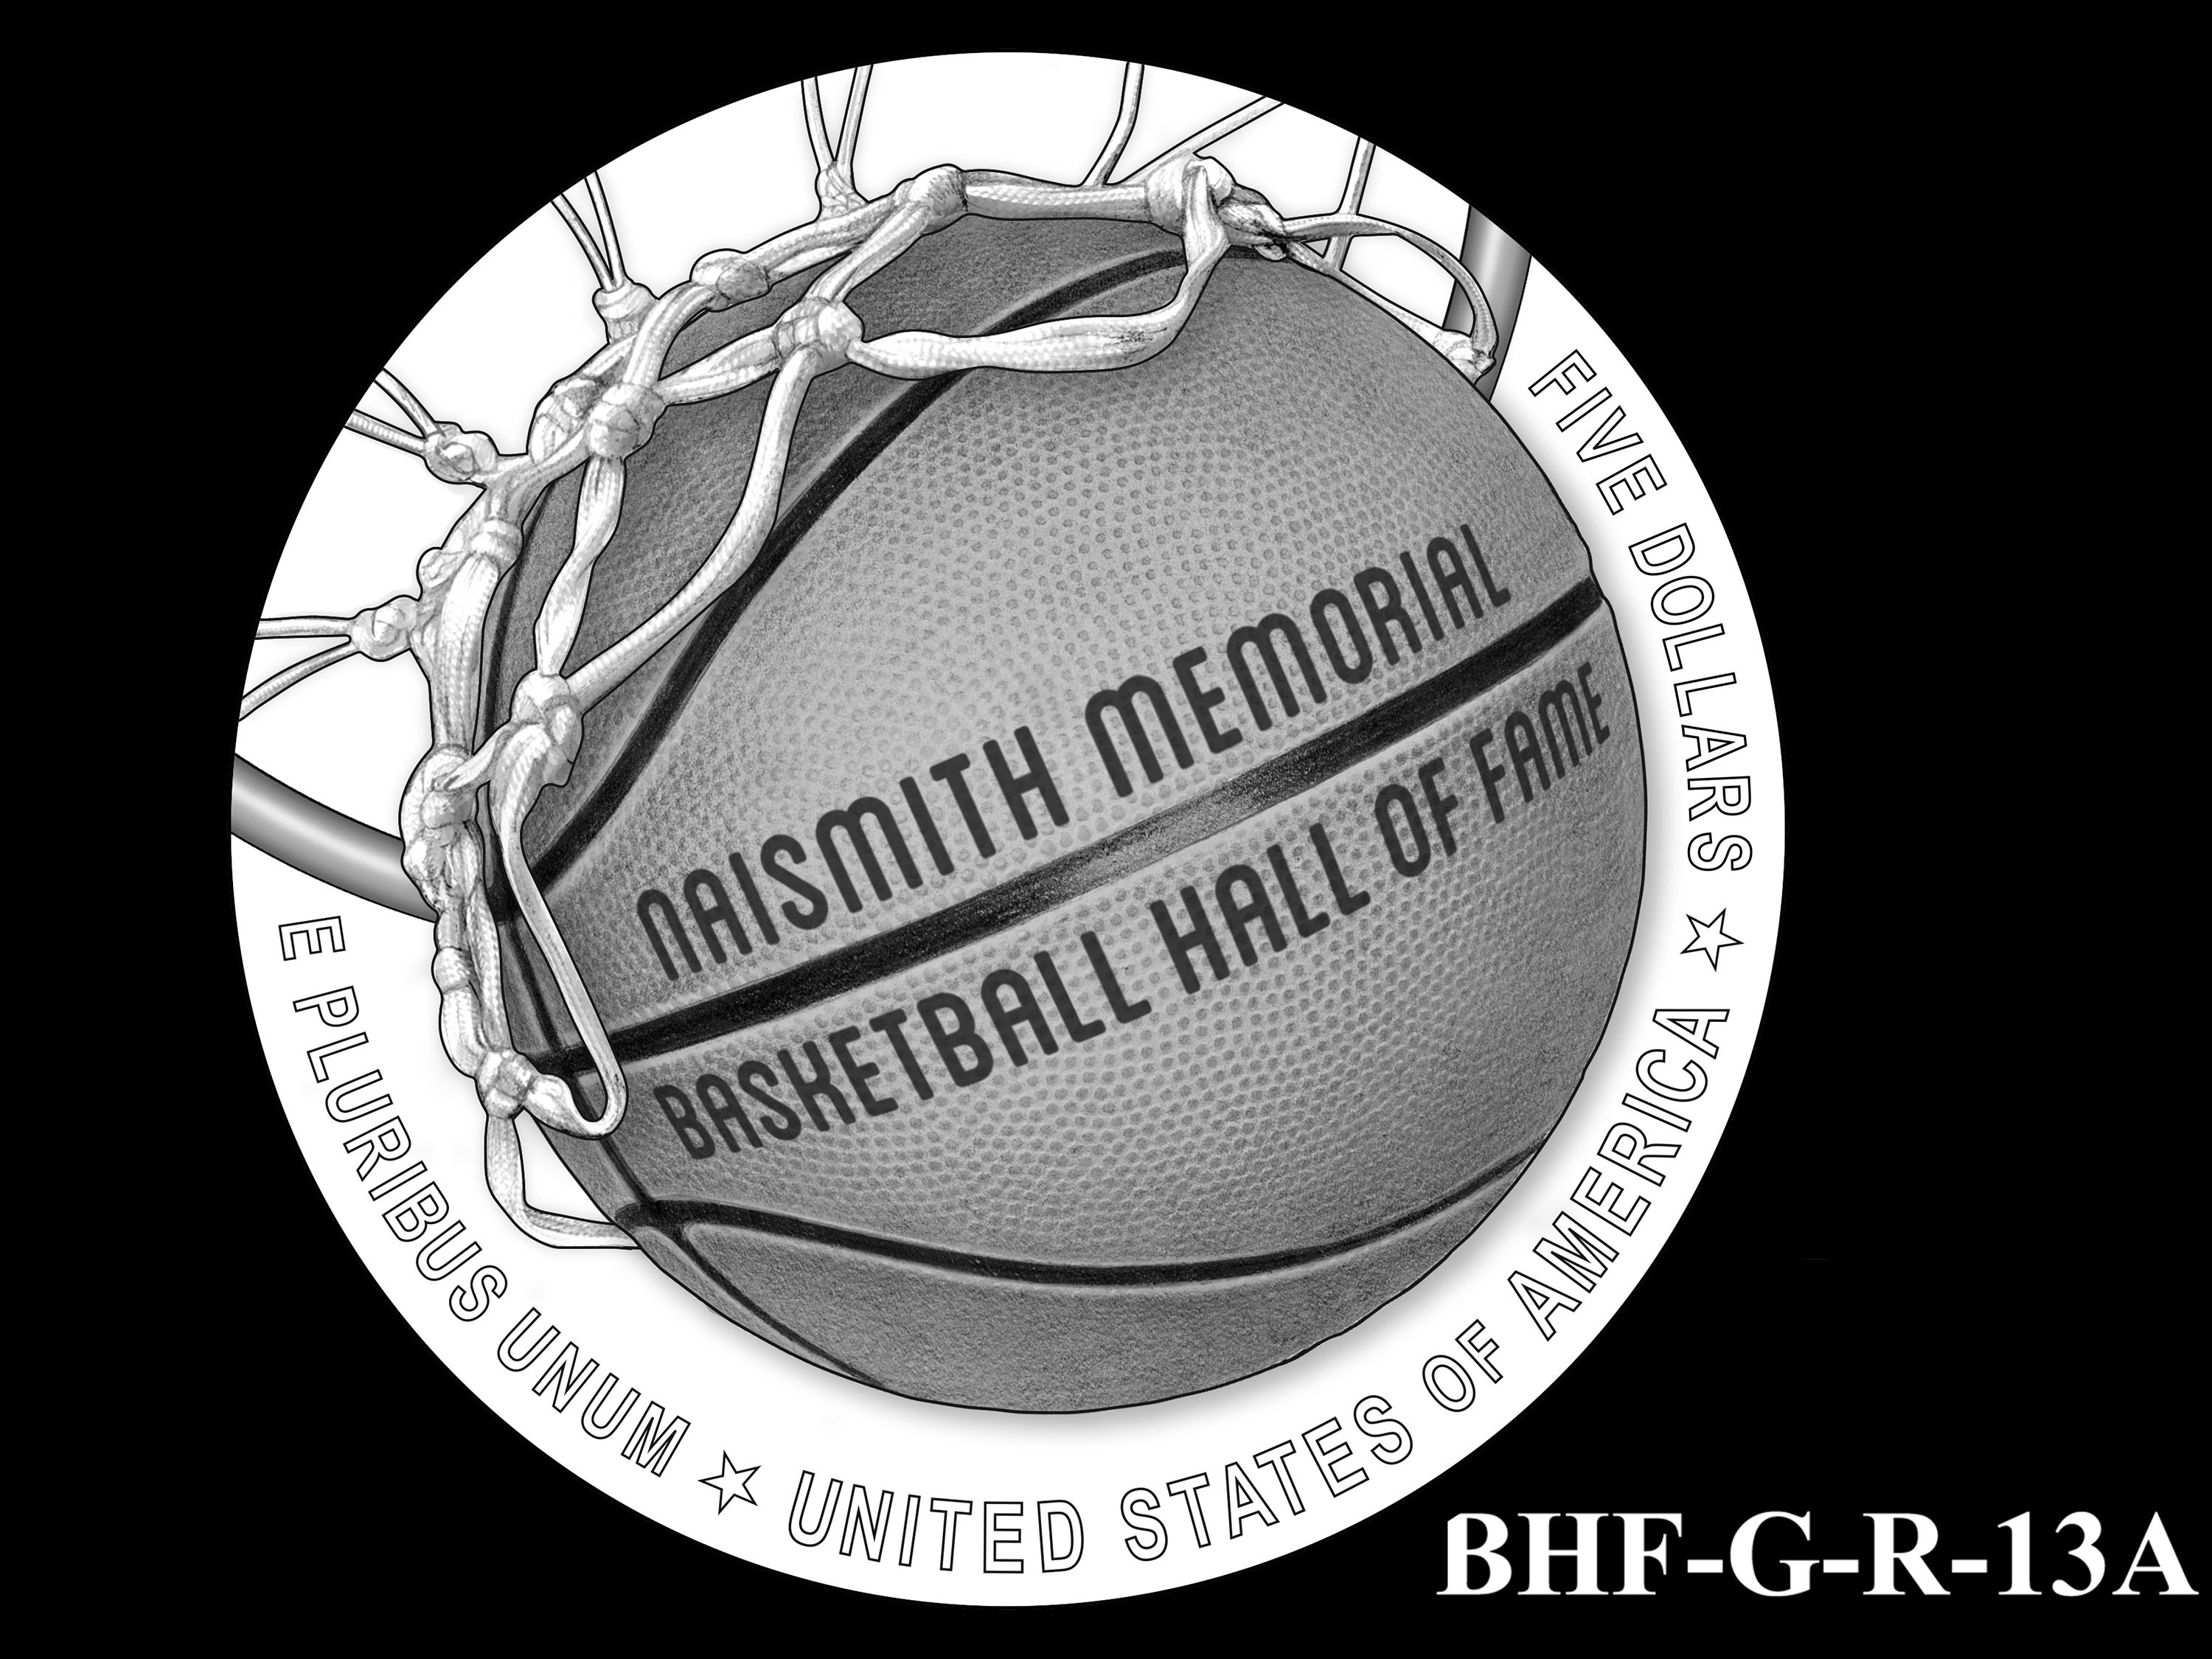 BHF-G-R-13A -- 2020 Basketball Hall of Fame Commemorative Coin Program - Gold Reverse